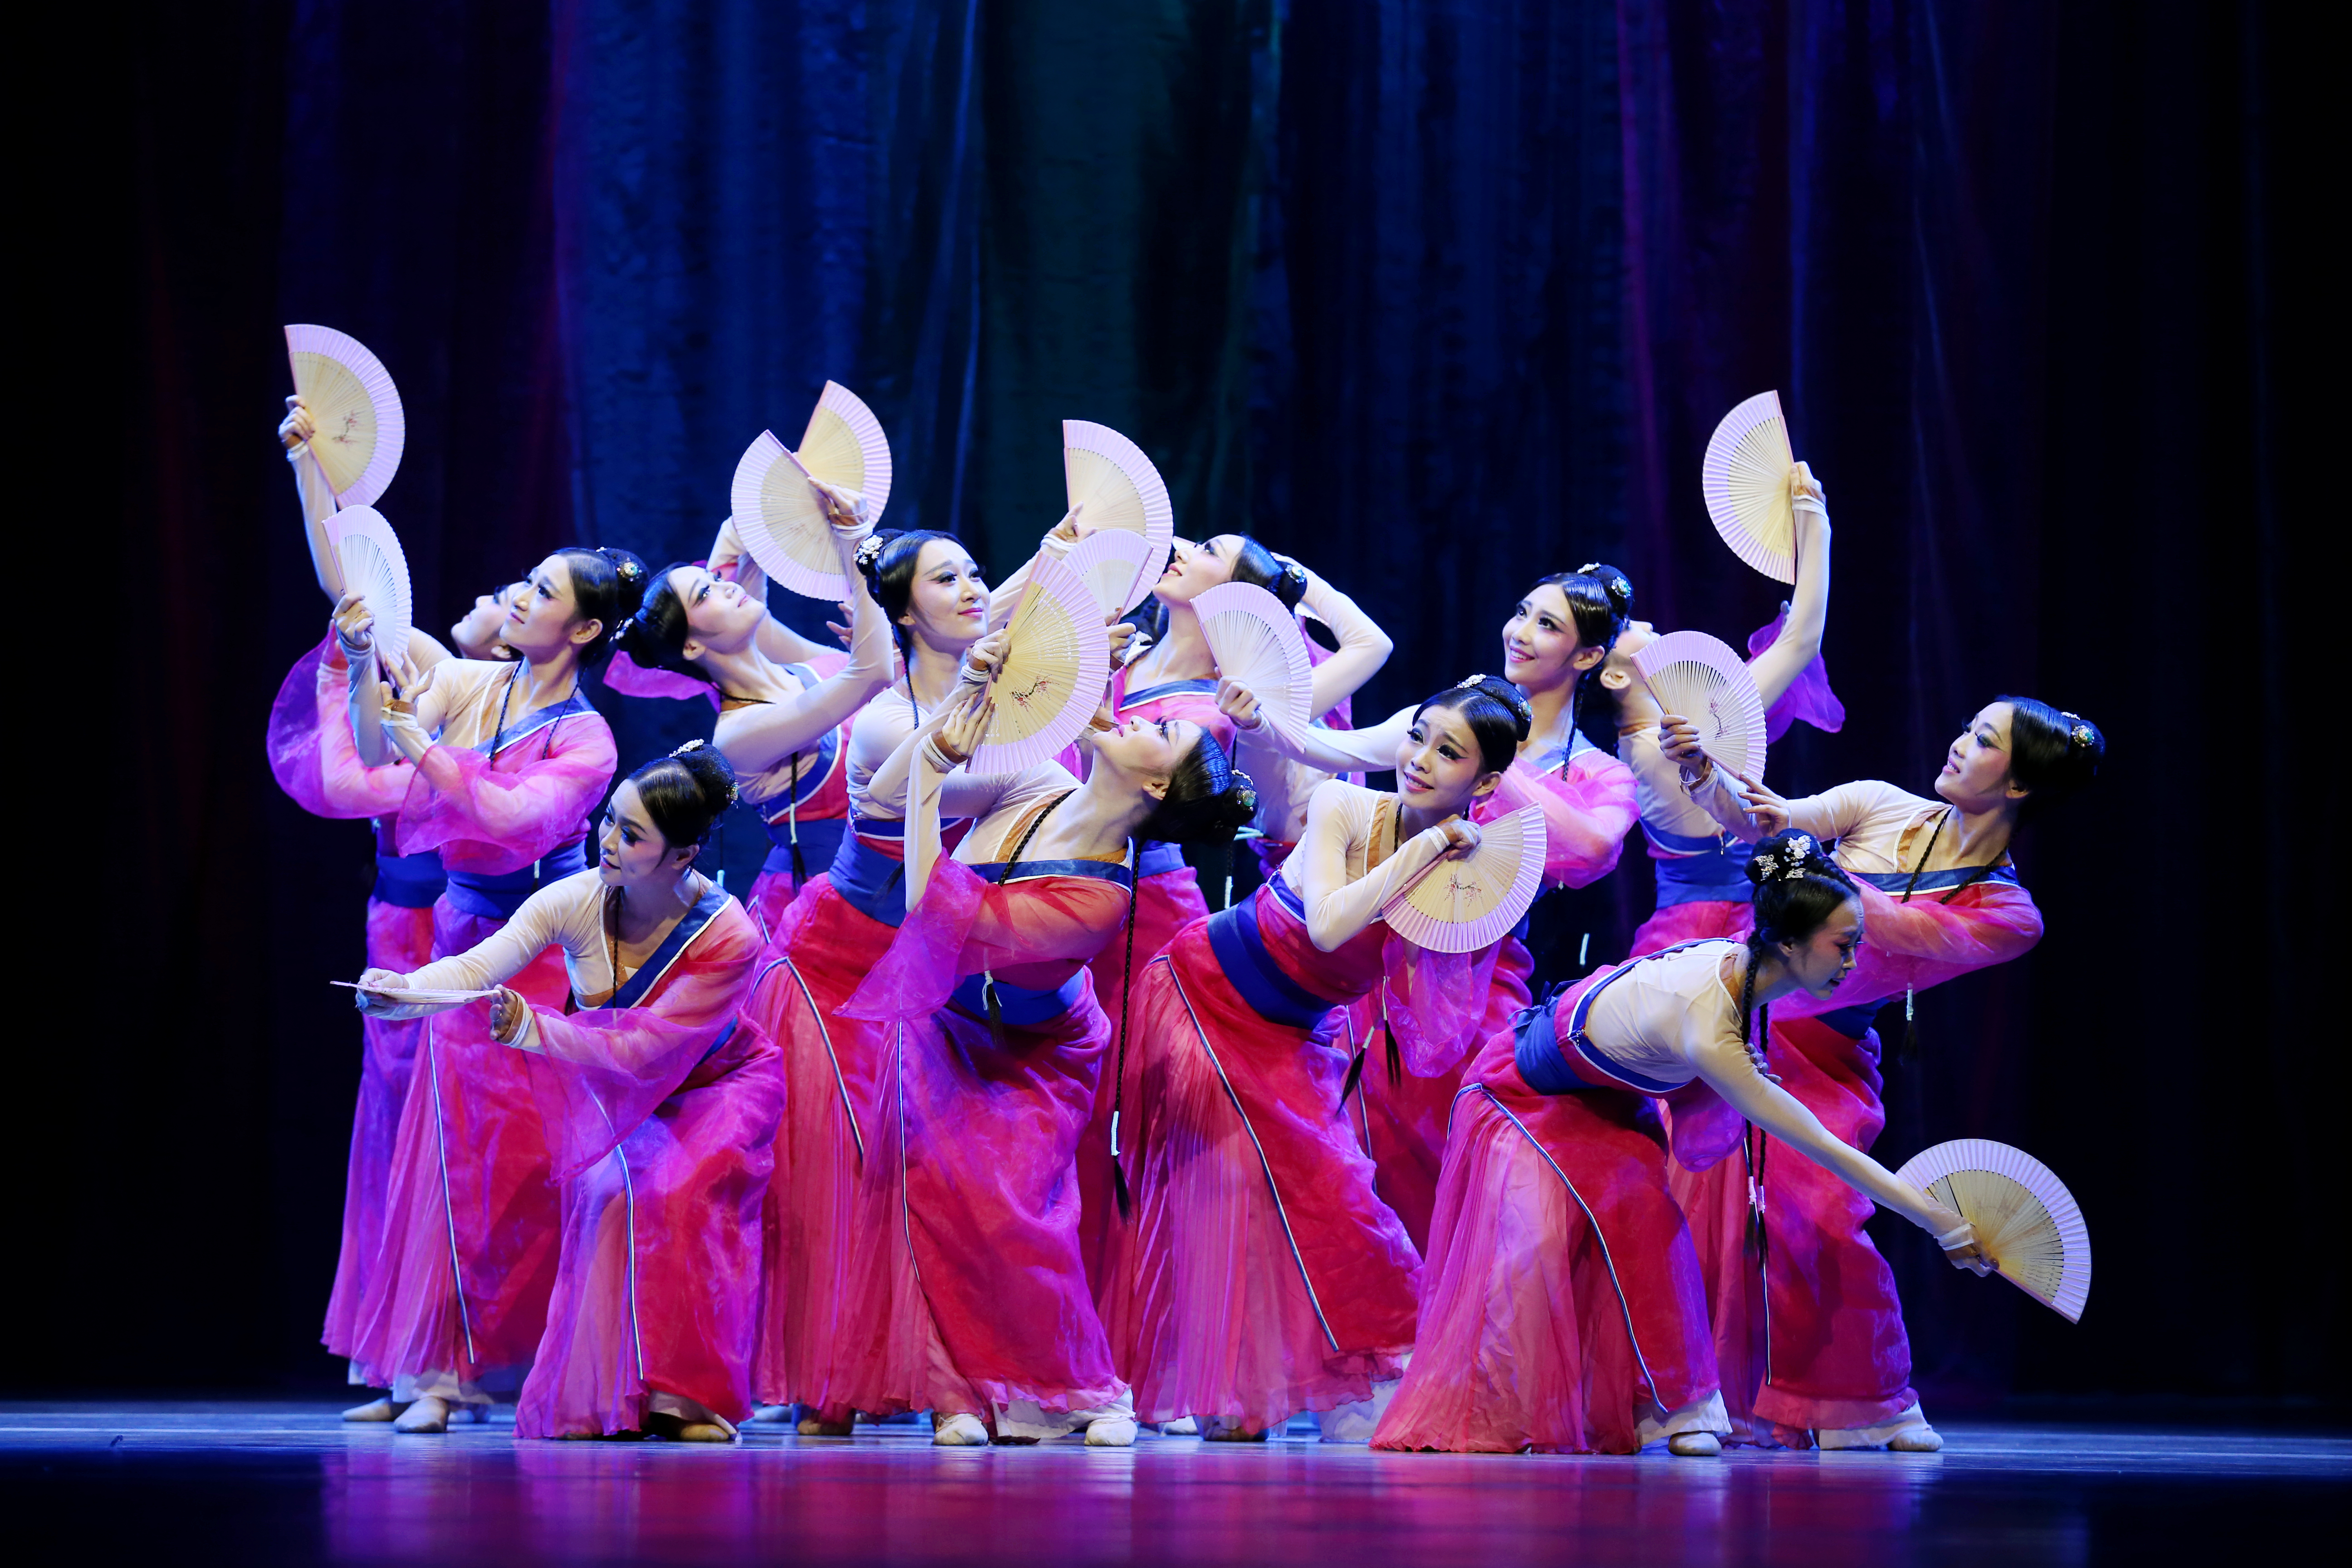 Guo Feng Performance Tour - Beijing Dance Academy